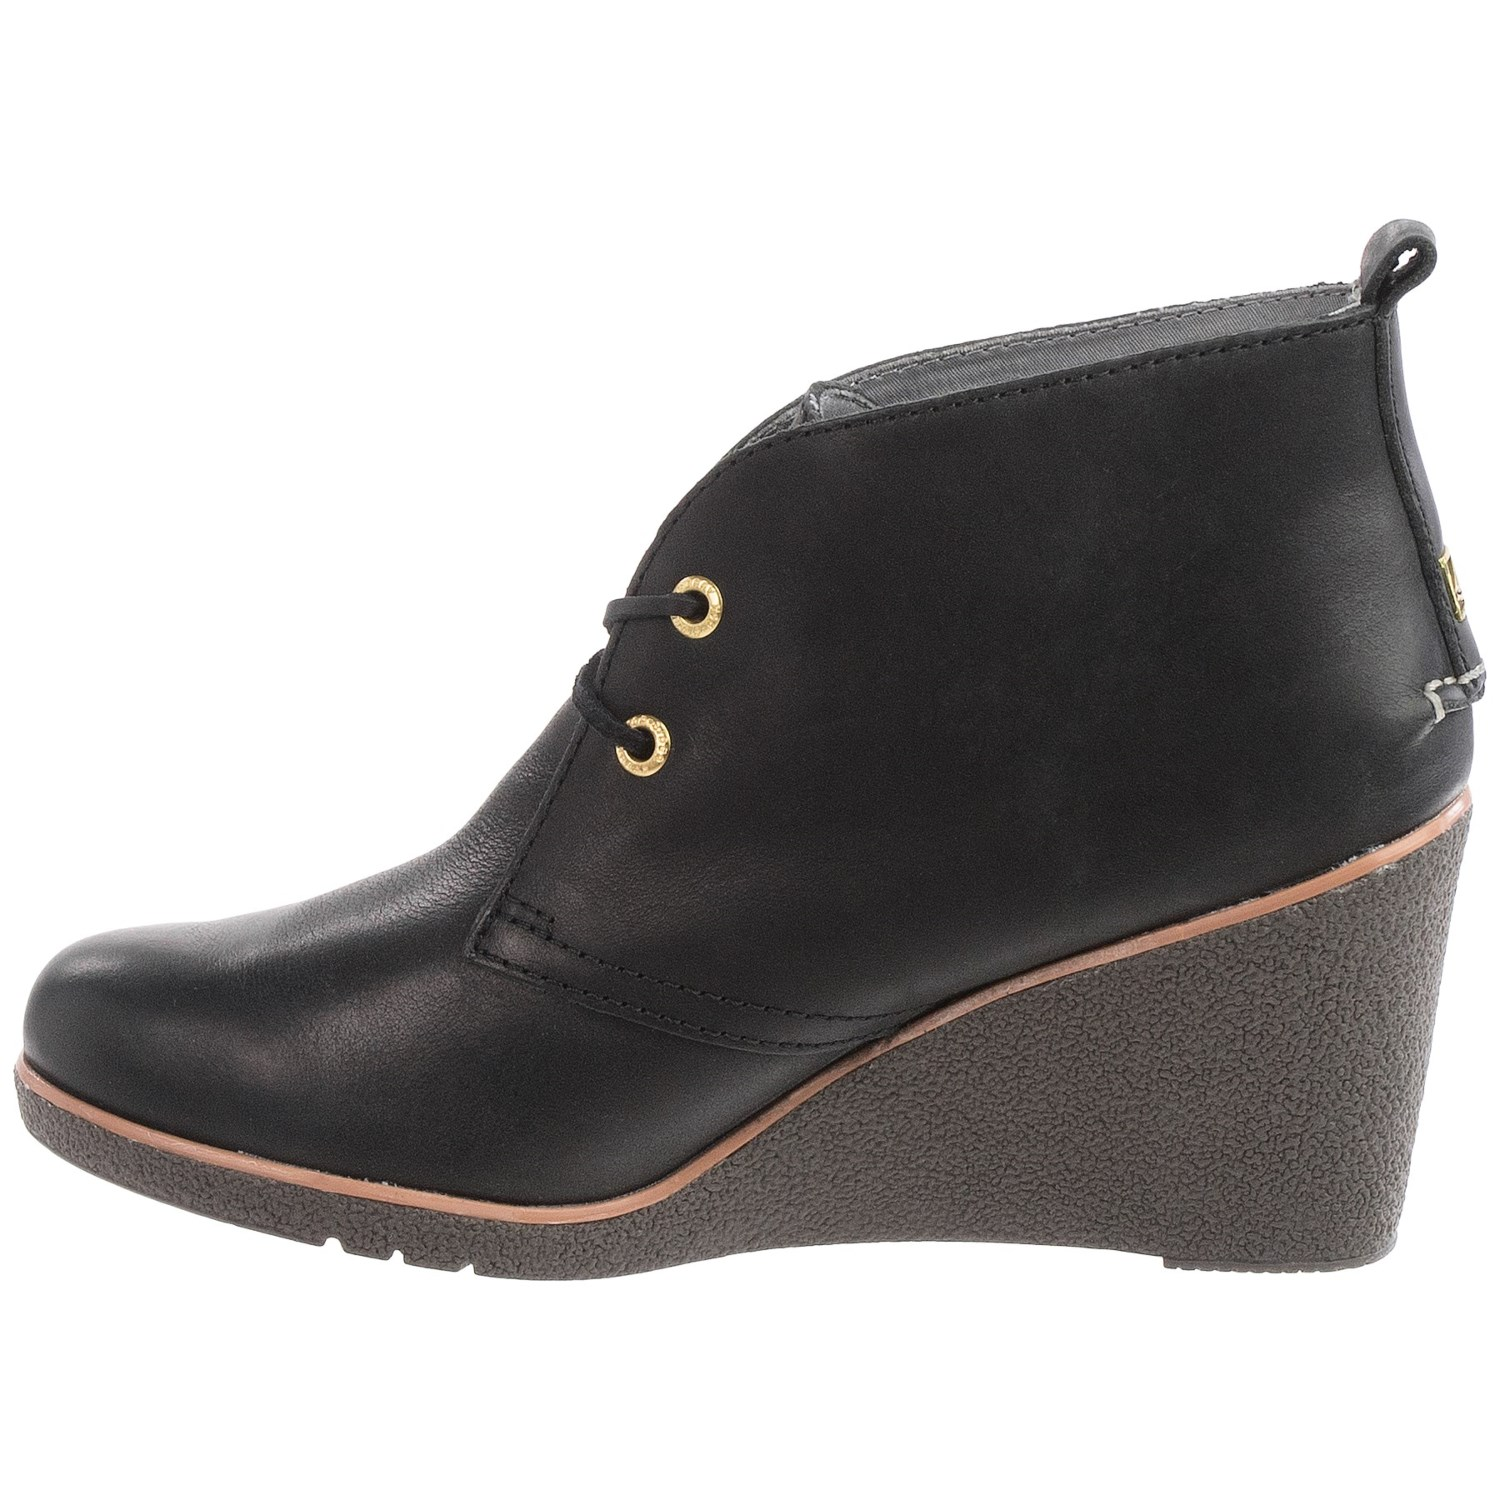 sperry harlow burnished leather wedge boots for